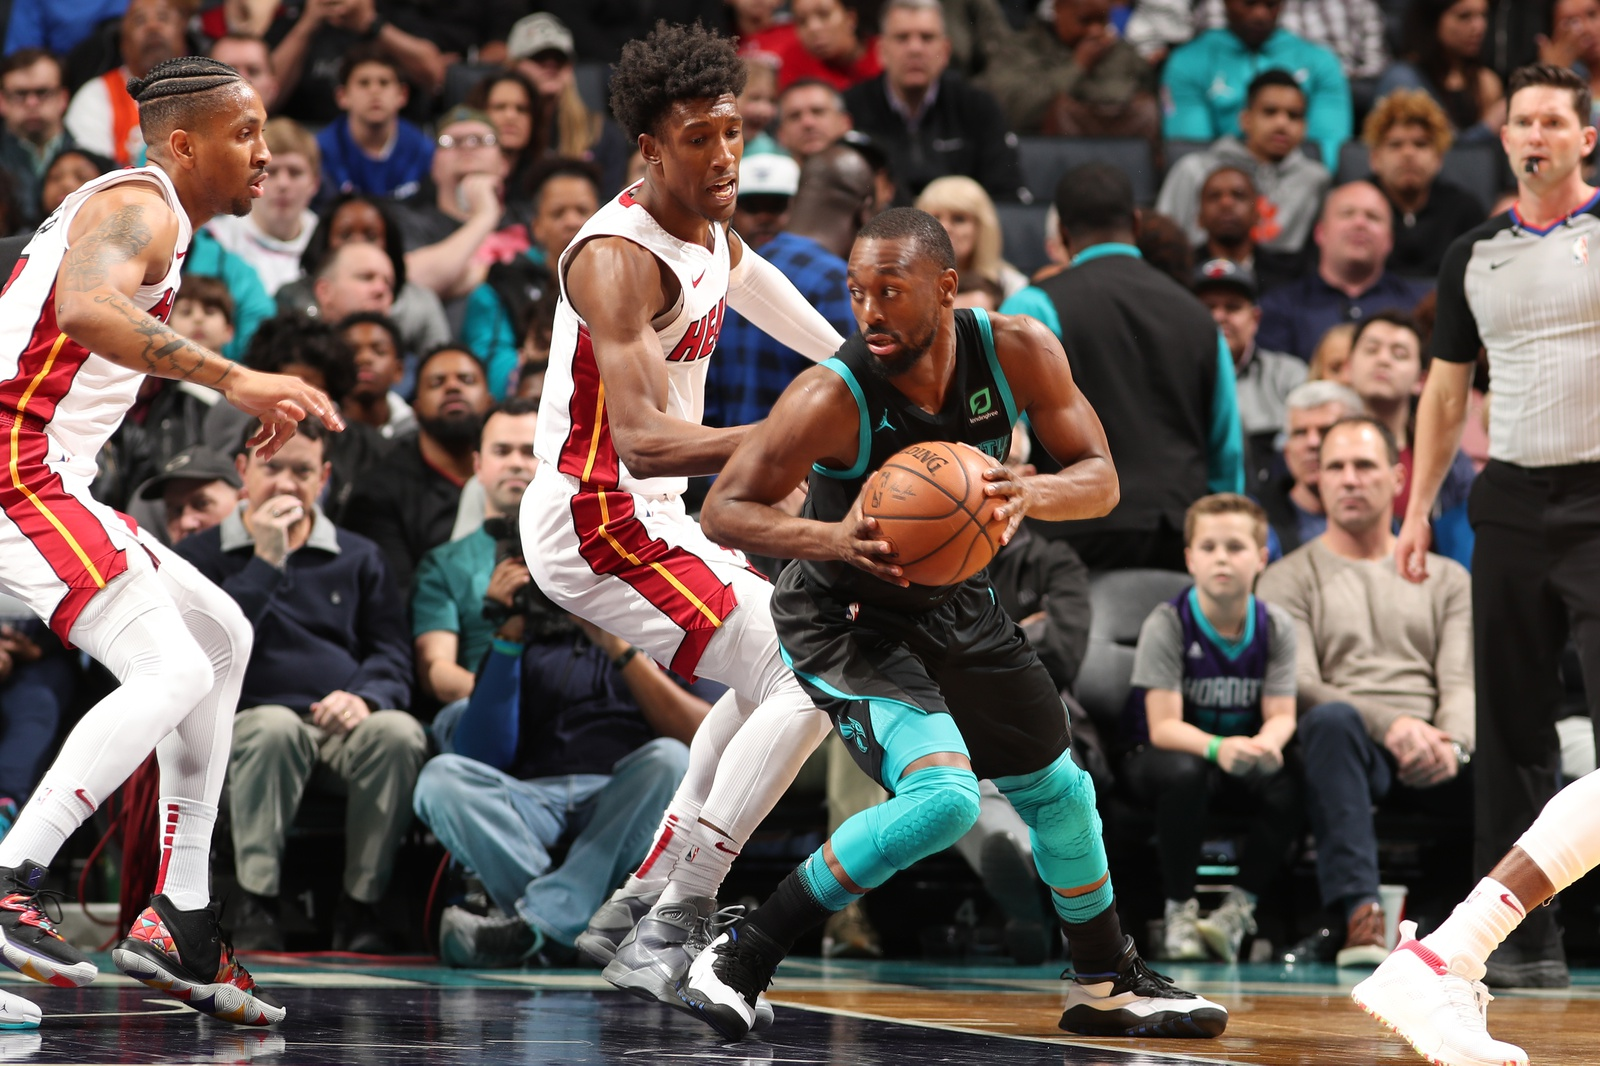 Kemba Walker #15 of the Charlotte Hornets handles the ball against the Miami Heat on March 6, 2019 at Spectrum Center in Charlotte, North Carolina